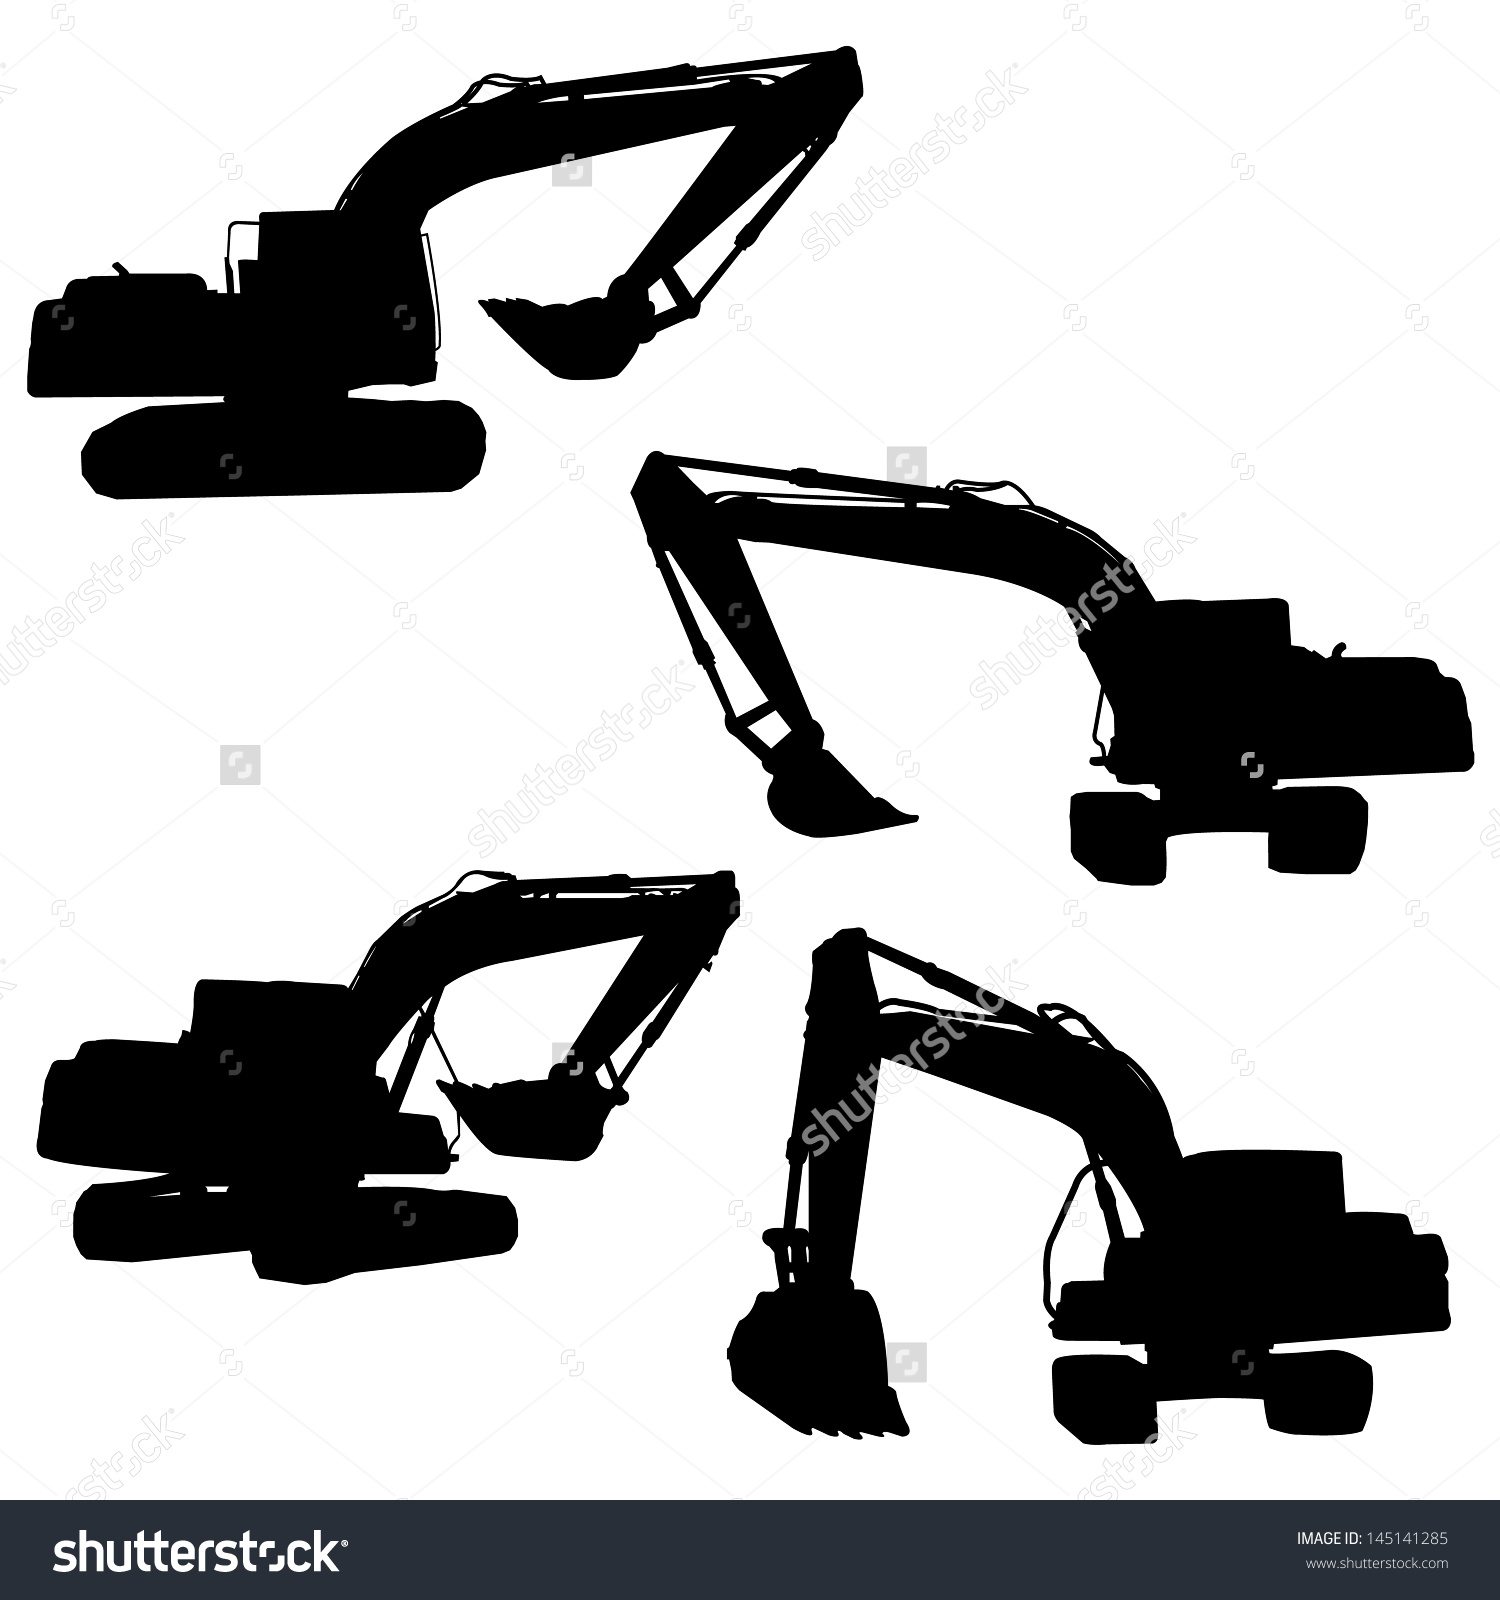 Backhoe Silhouette Vector Stock Vector 145141285.